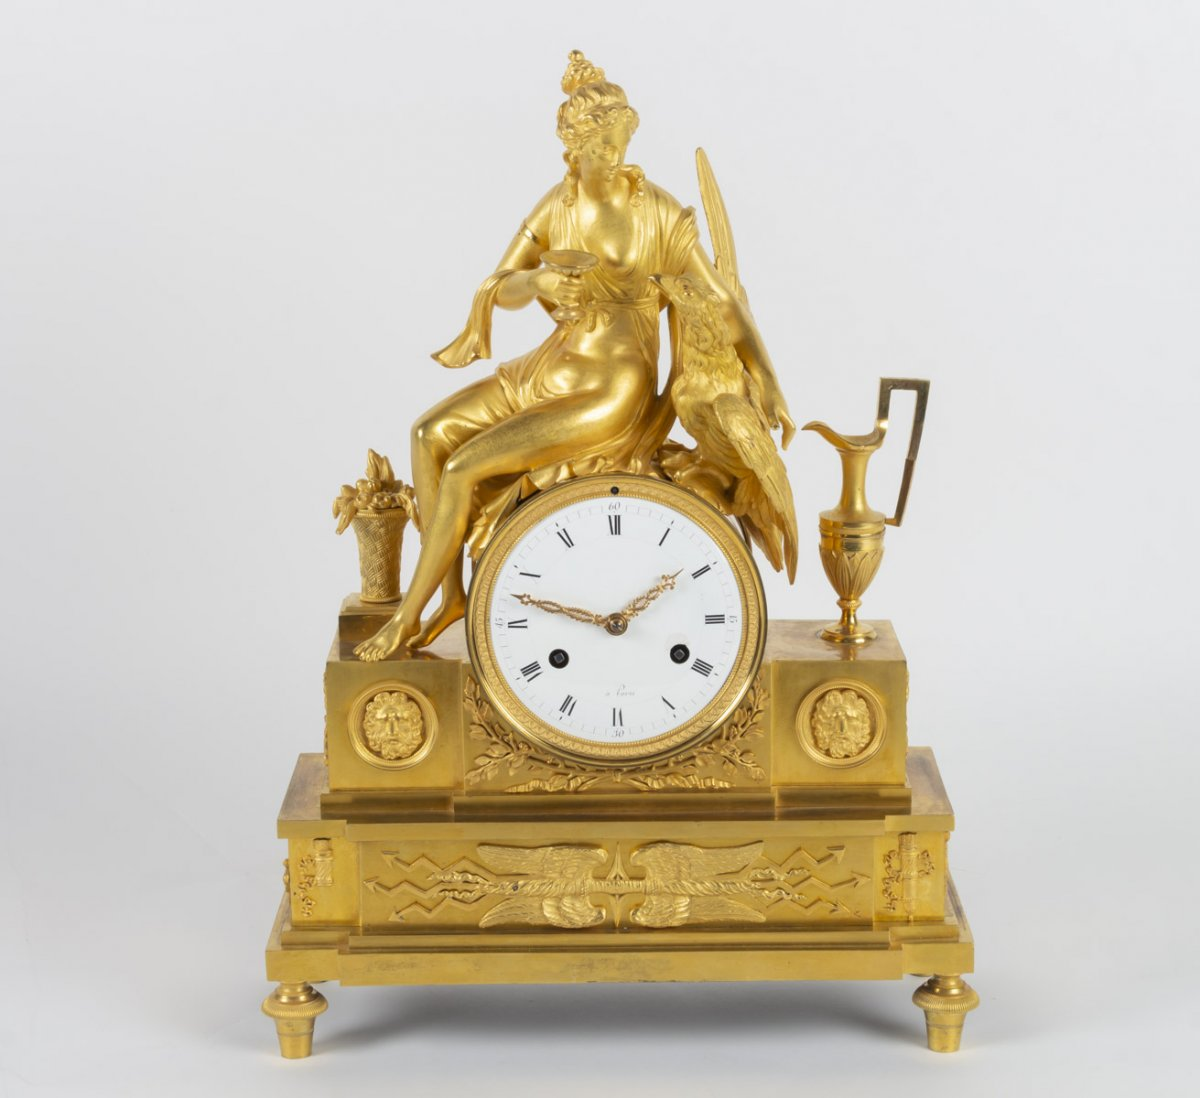 Pendule d'époque 1er Empire (1804 - 1815).